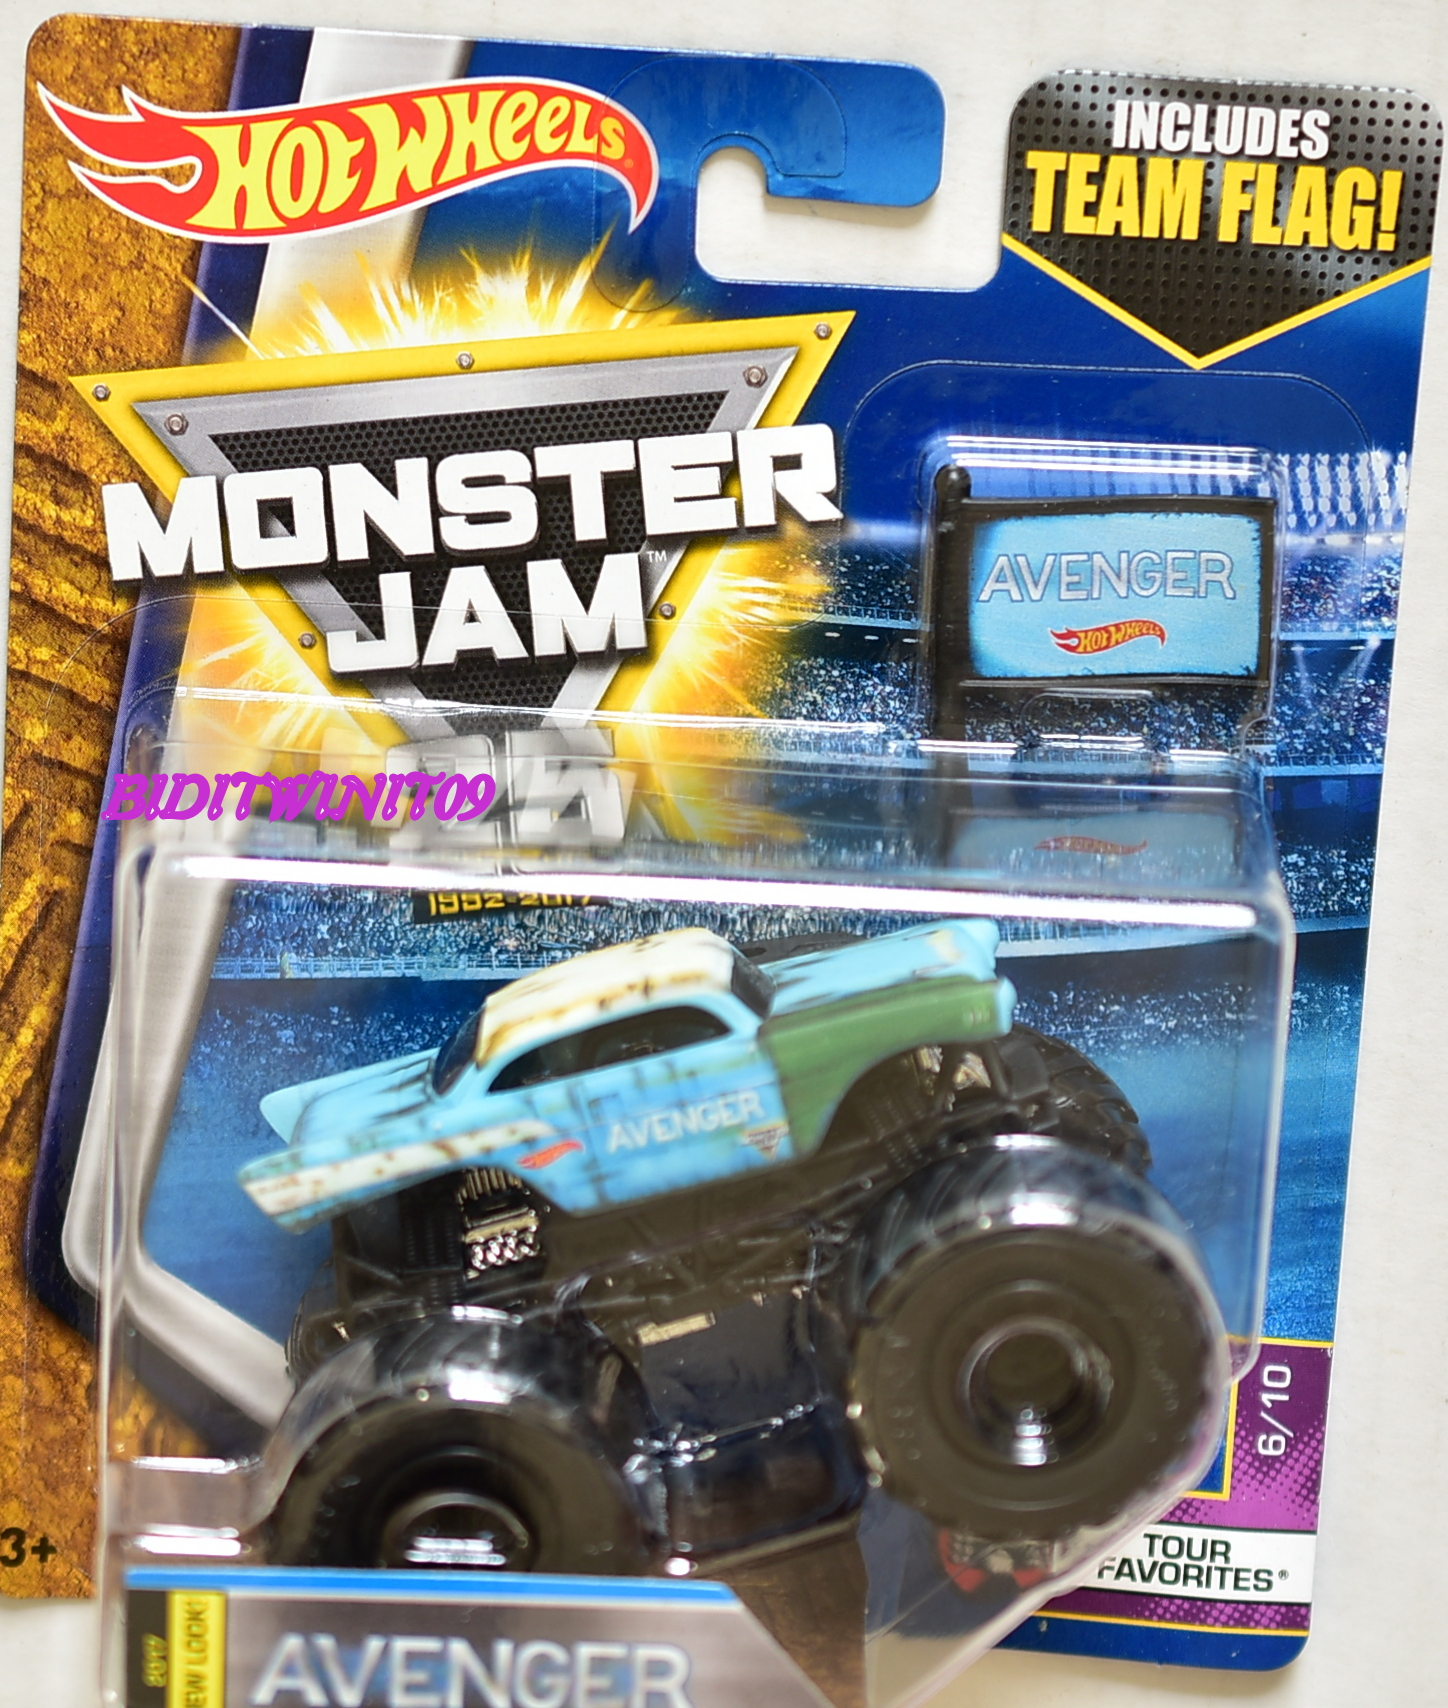 HOT WHEELS 2017 MONSTER JAM INCLUDES TEAM FLAG AVENGER NEW LOOK